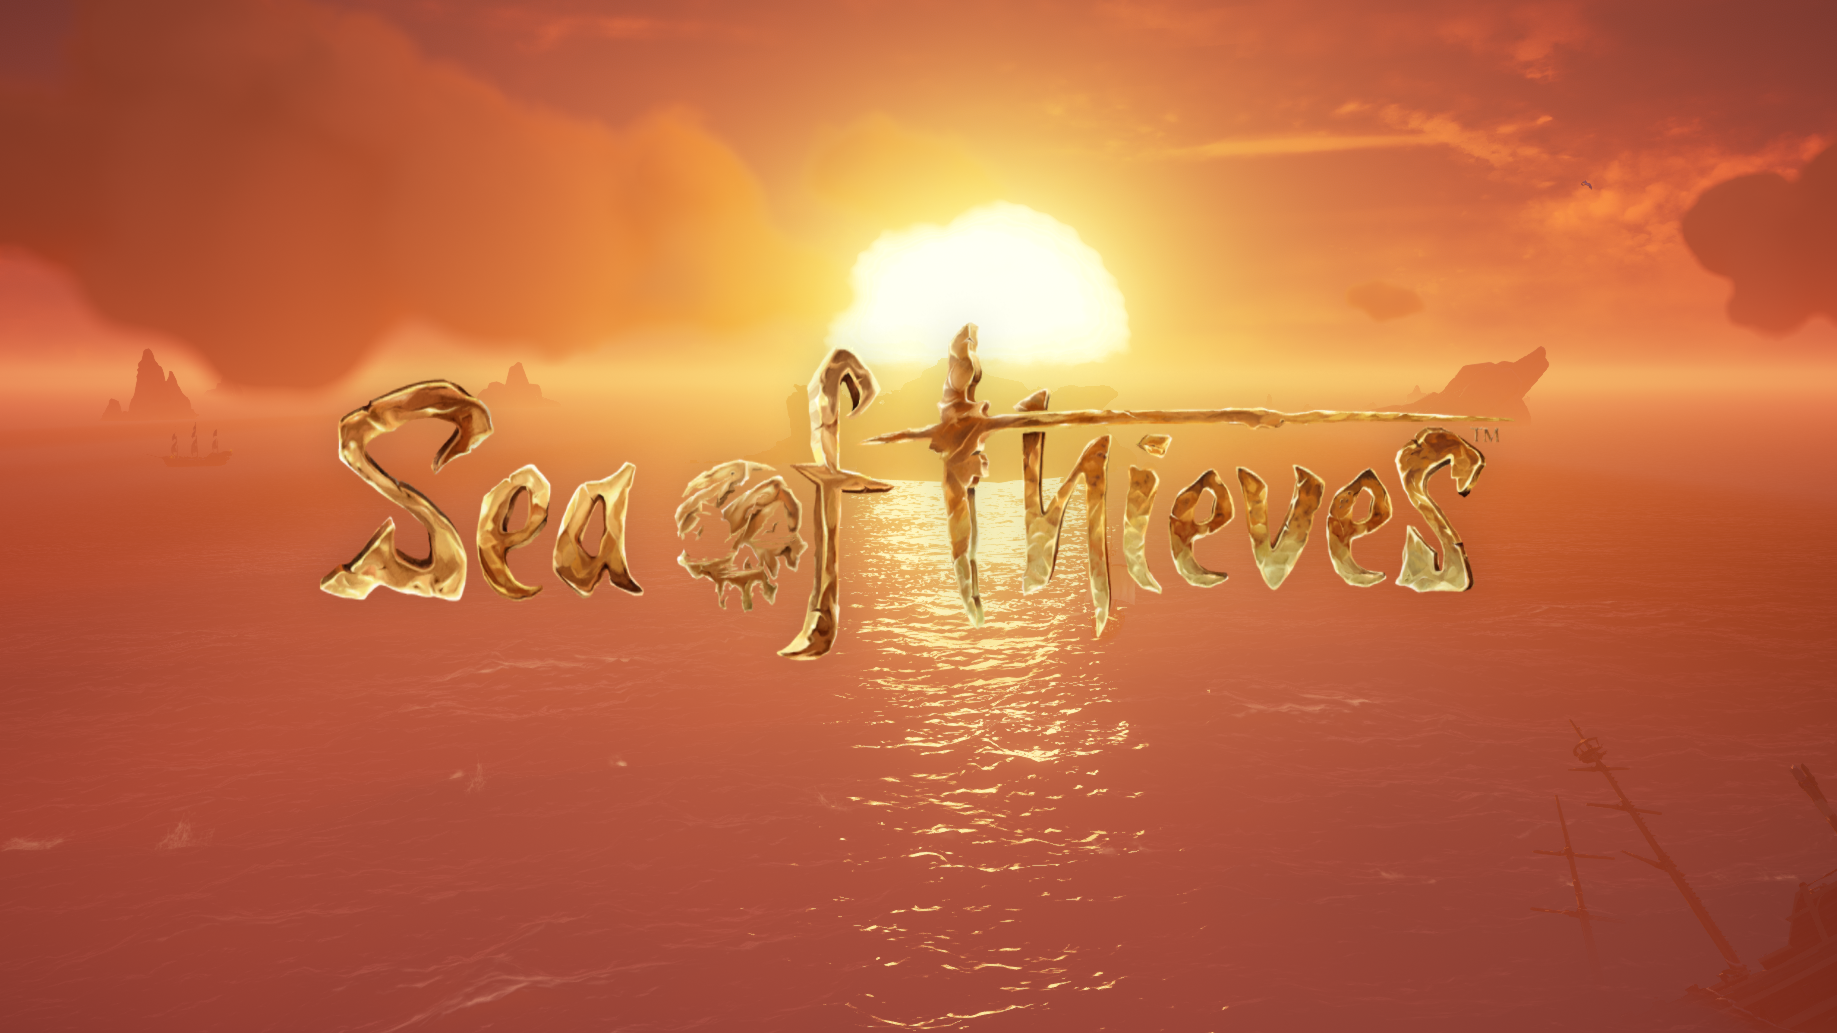 sea of thieves steam